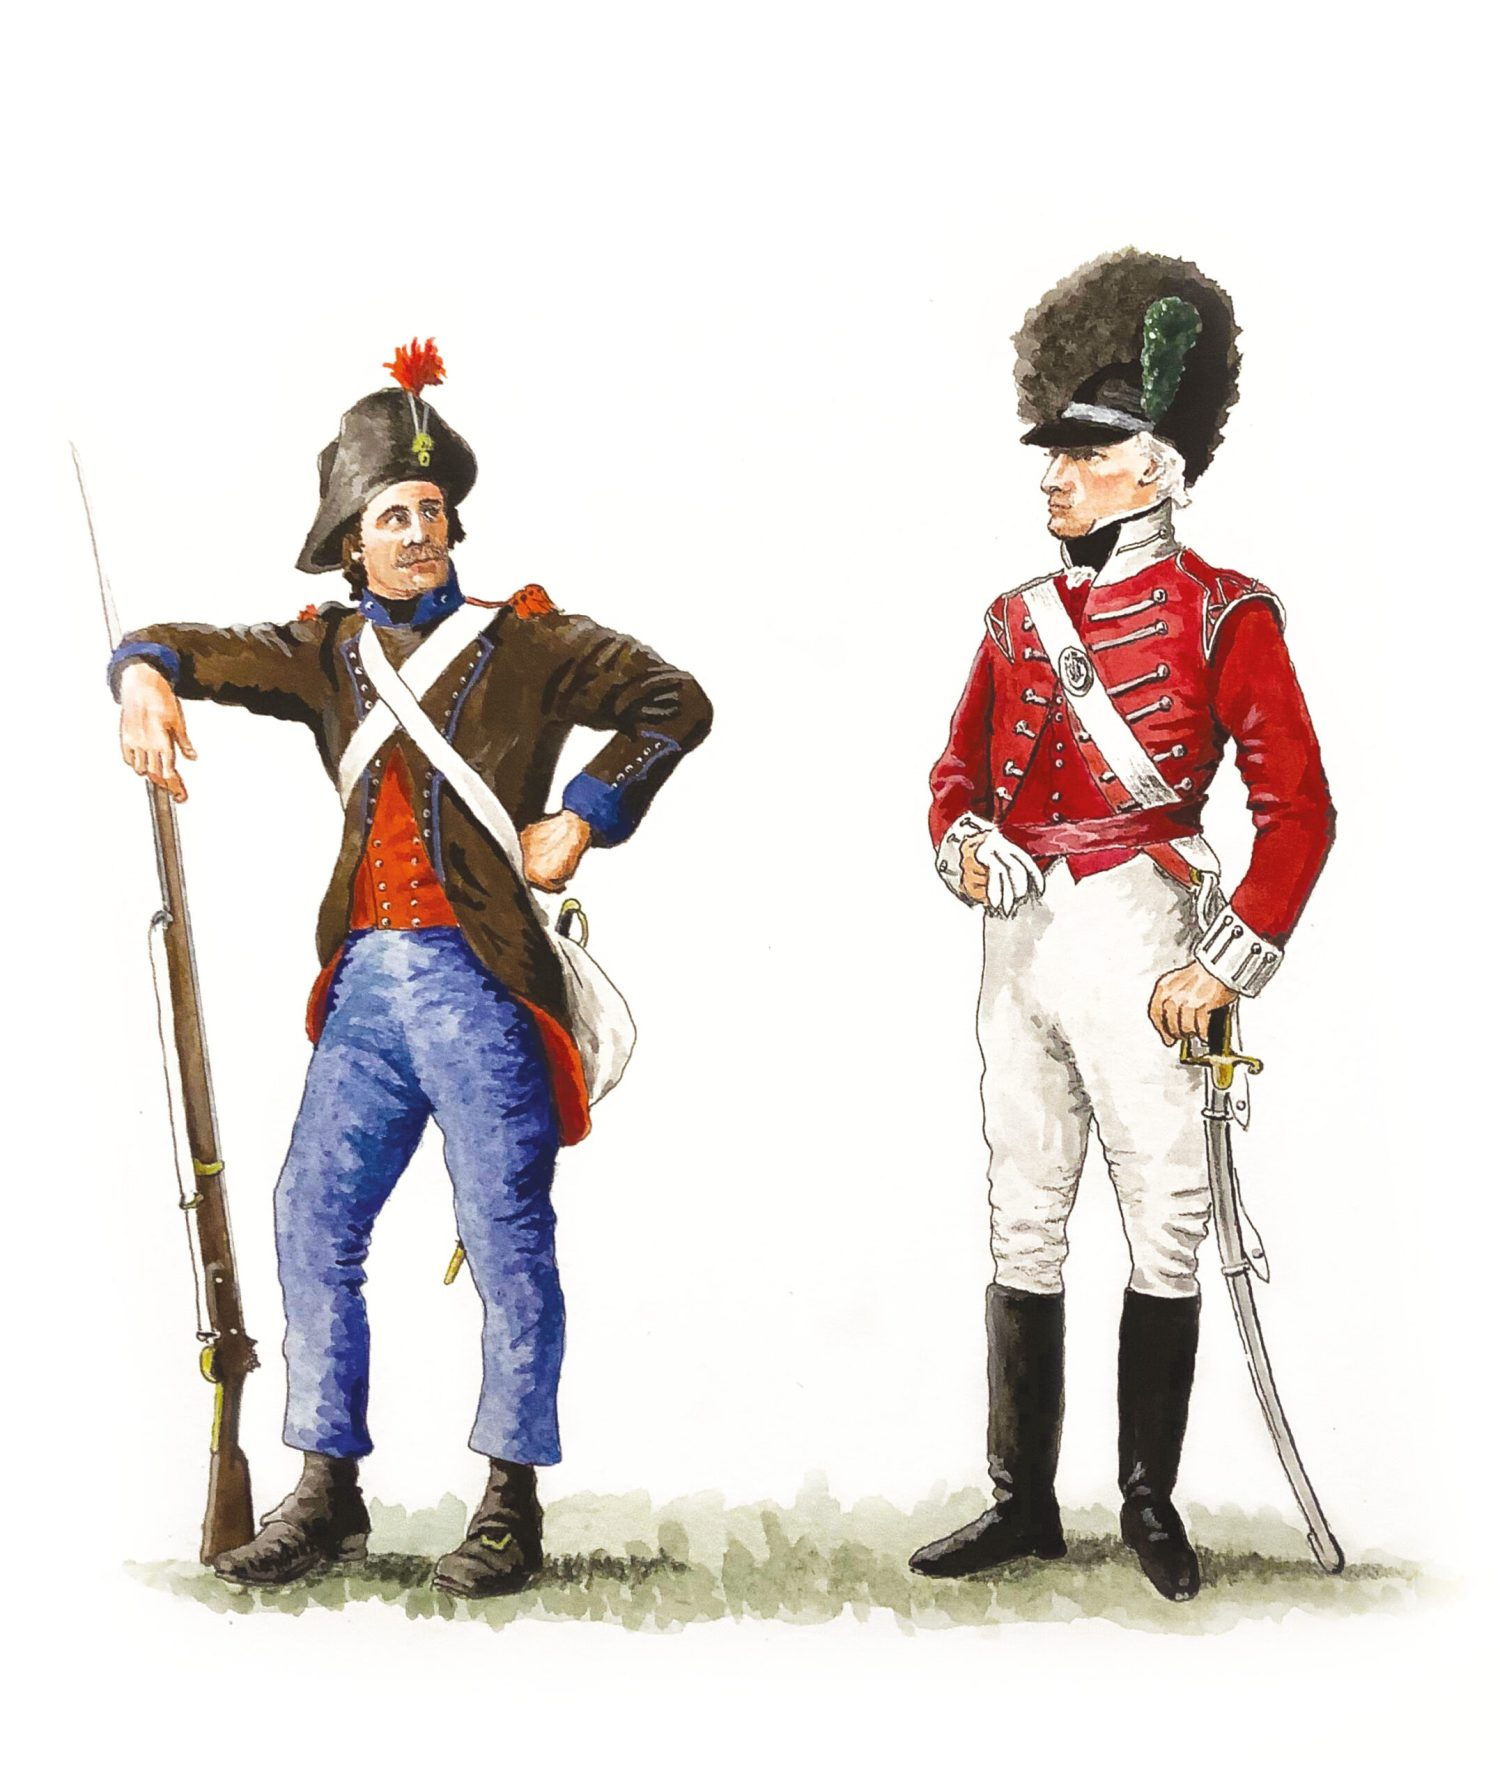 below Left Grenadier of the 2nd Légion de Francs, the 'Légion Noire'. The Légion's coats with splendid irony were British, having been seized in 1795 when equipment was landed at Quiberon Bay in support of the Vendée Rebellion. They seem to have evolved into chocolate brown, having been dyed black: hence the nickname. Otherwise, the Légion were armed and dressed like conventional French infantry of the period. below Subaltern, Light Company, Fishguard and Newport Volunteer Infantry. A short coatee or jacket of light-infantry pattern still exists for this unit. The Light Company would probably have worn a crested leather hat of light-cavalry pattern and carried a curved sabre (which were just coming into vogue). Despite only being part-time units, surviving clothing suggests that they were well and uniformly dressed.